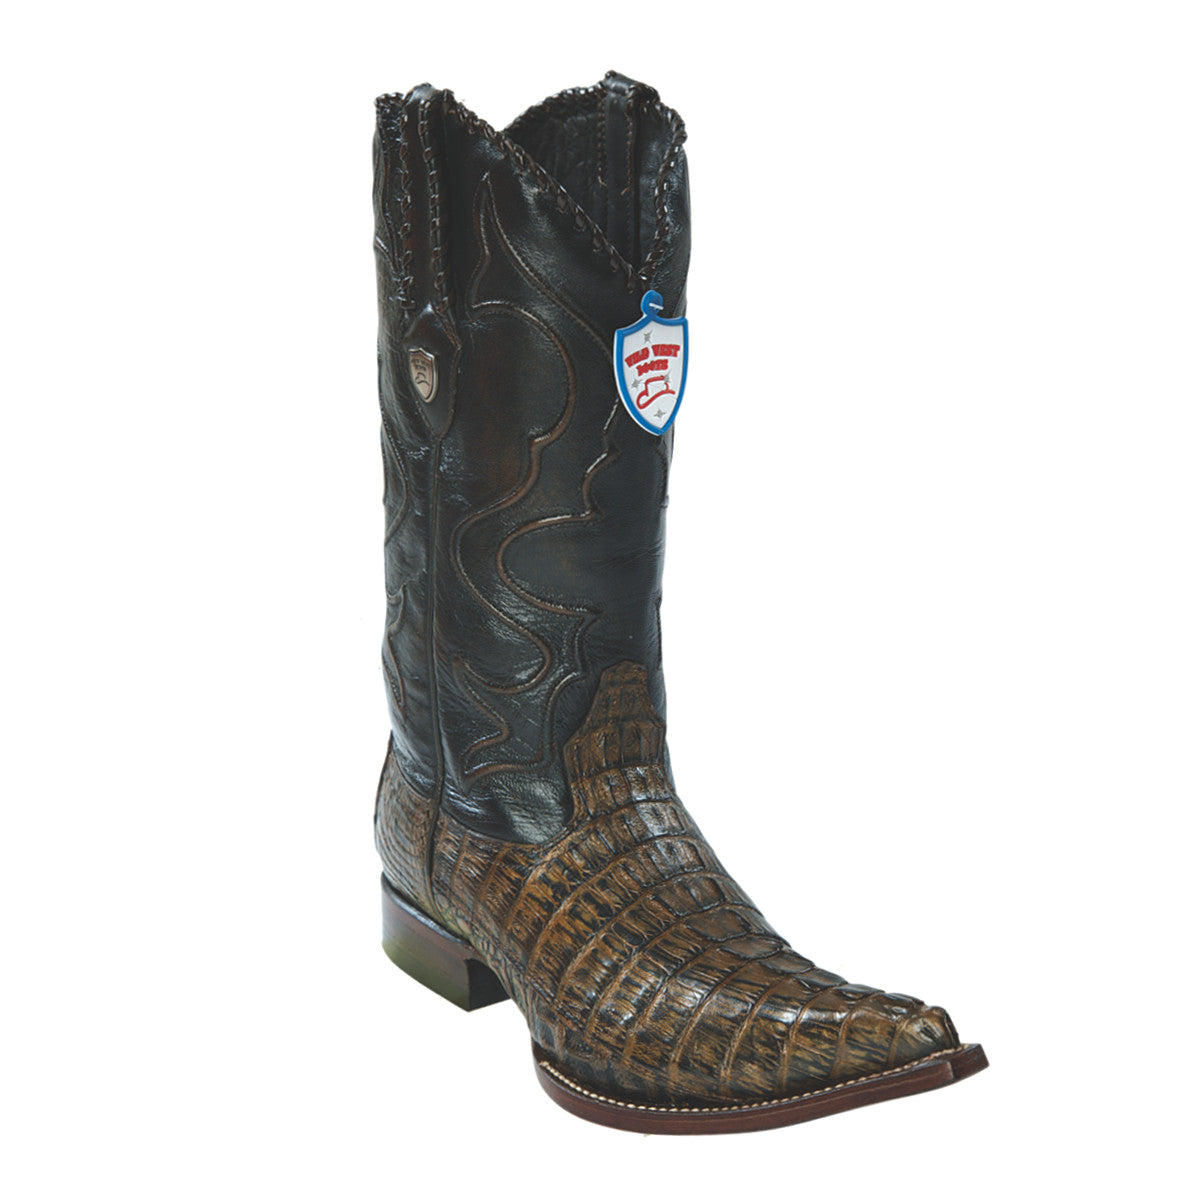 Wild West Boots 3x Toe Caiman Tail